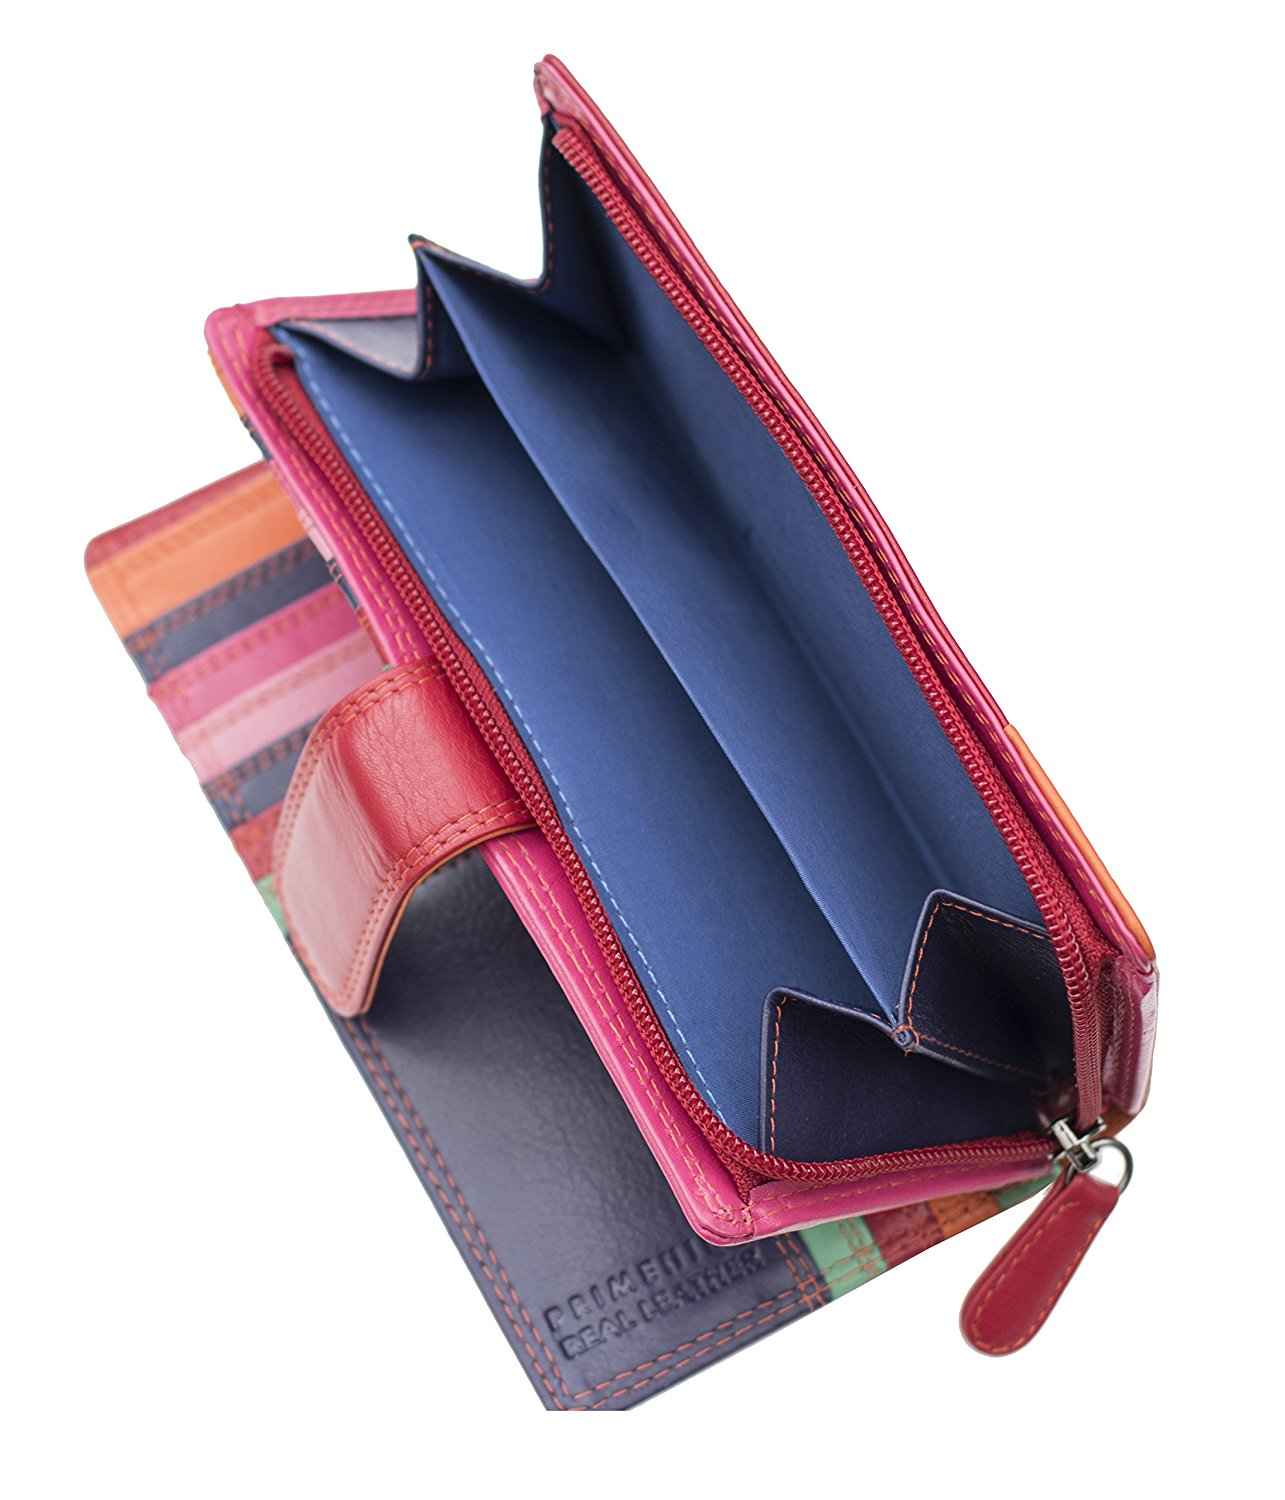 Femme-Luxe-Multi-couleur-cuir-grand-sac-a-main-RFID-Bloquant-violet-rouge miniature 9